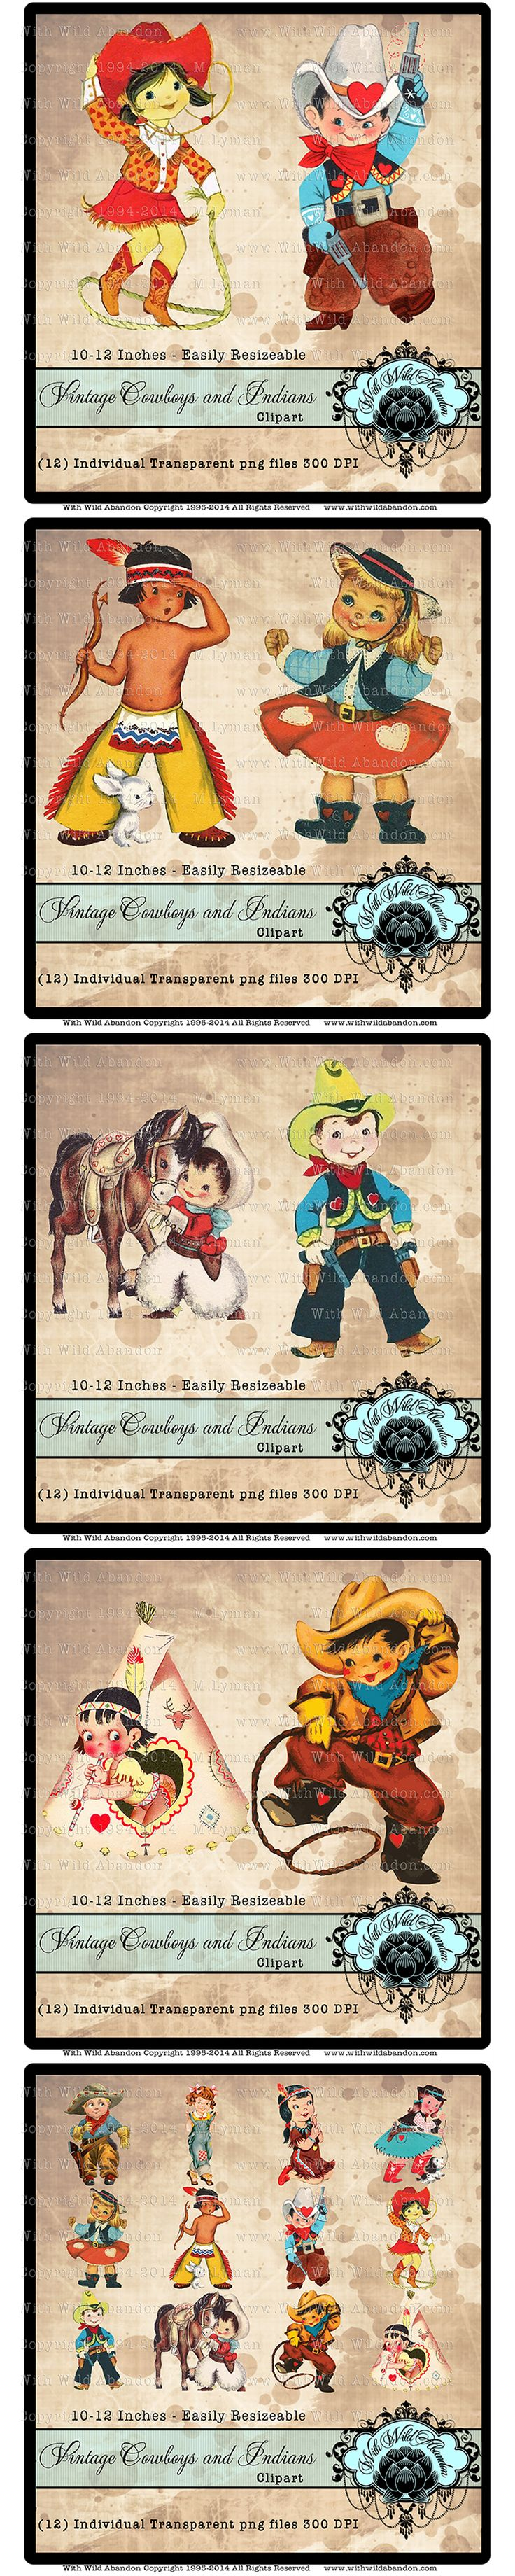 westerm clipart, rodeo clipart, vintage cowboy, indian, cowgirl, birthday party, party clipart, vintage clipart, invitations, instant download, scrapbook clipart, birthday party clipart